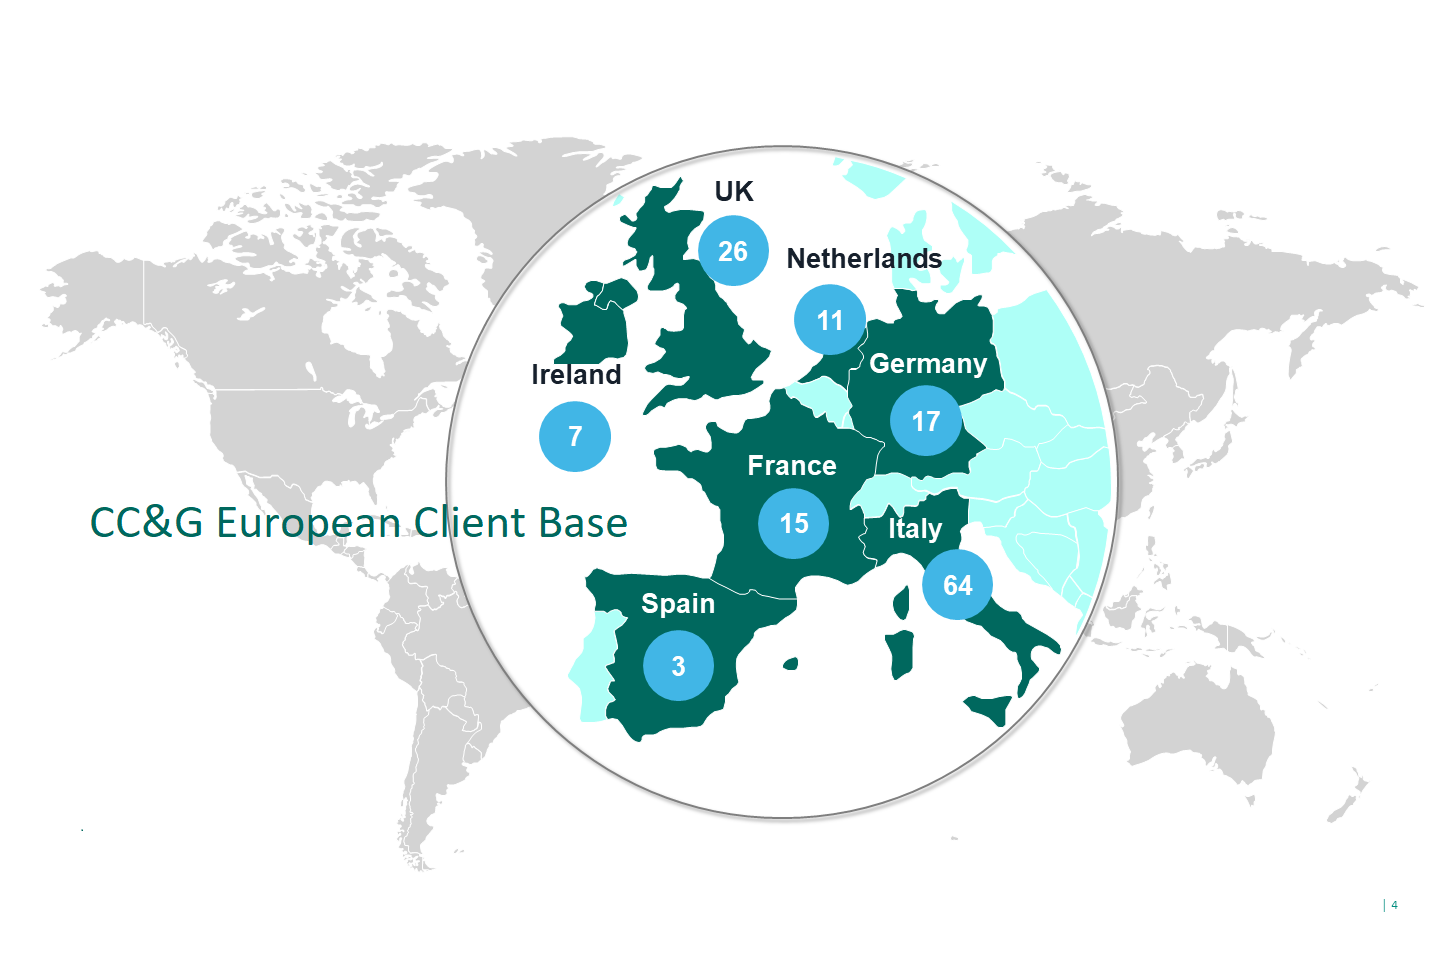 CCG Members - European Client Base